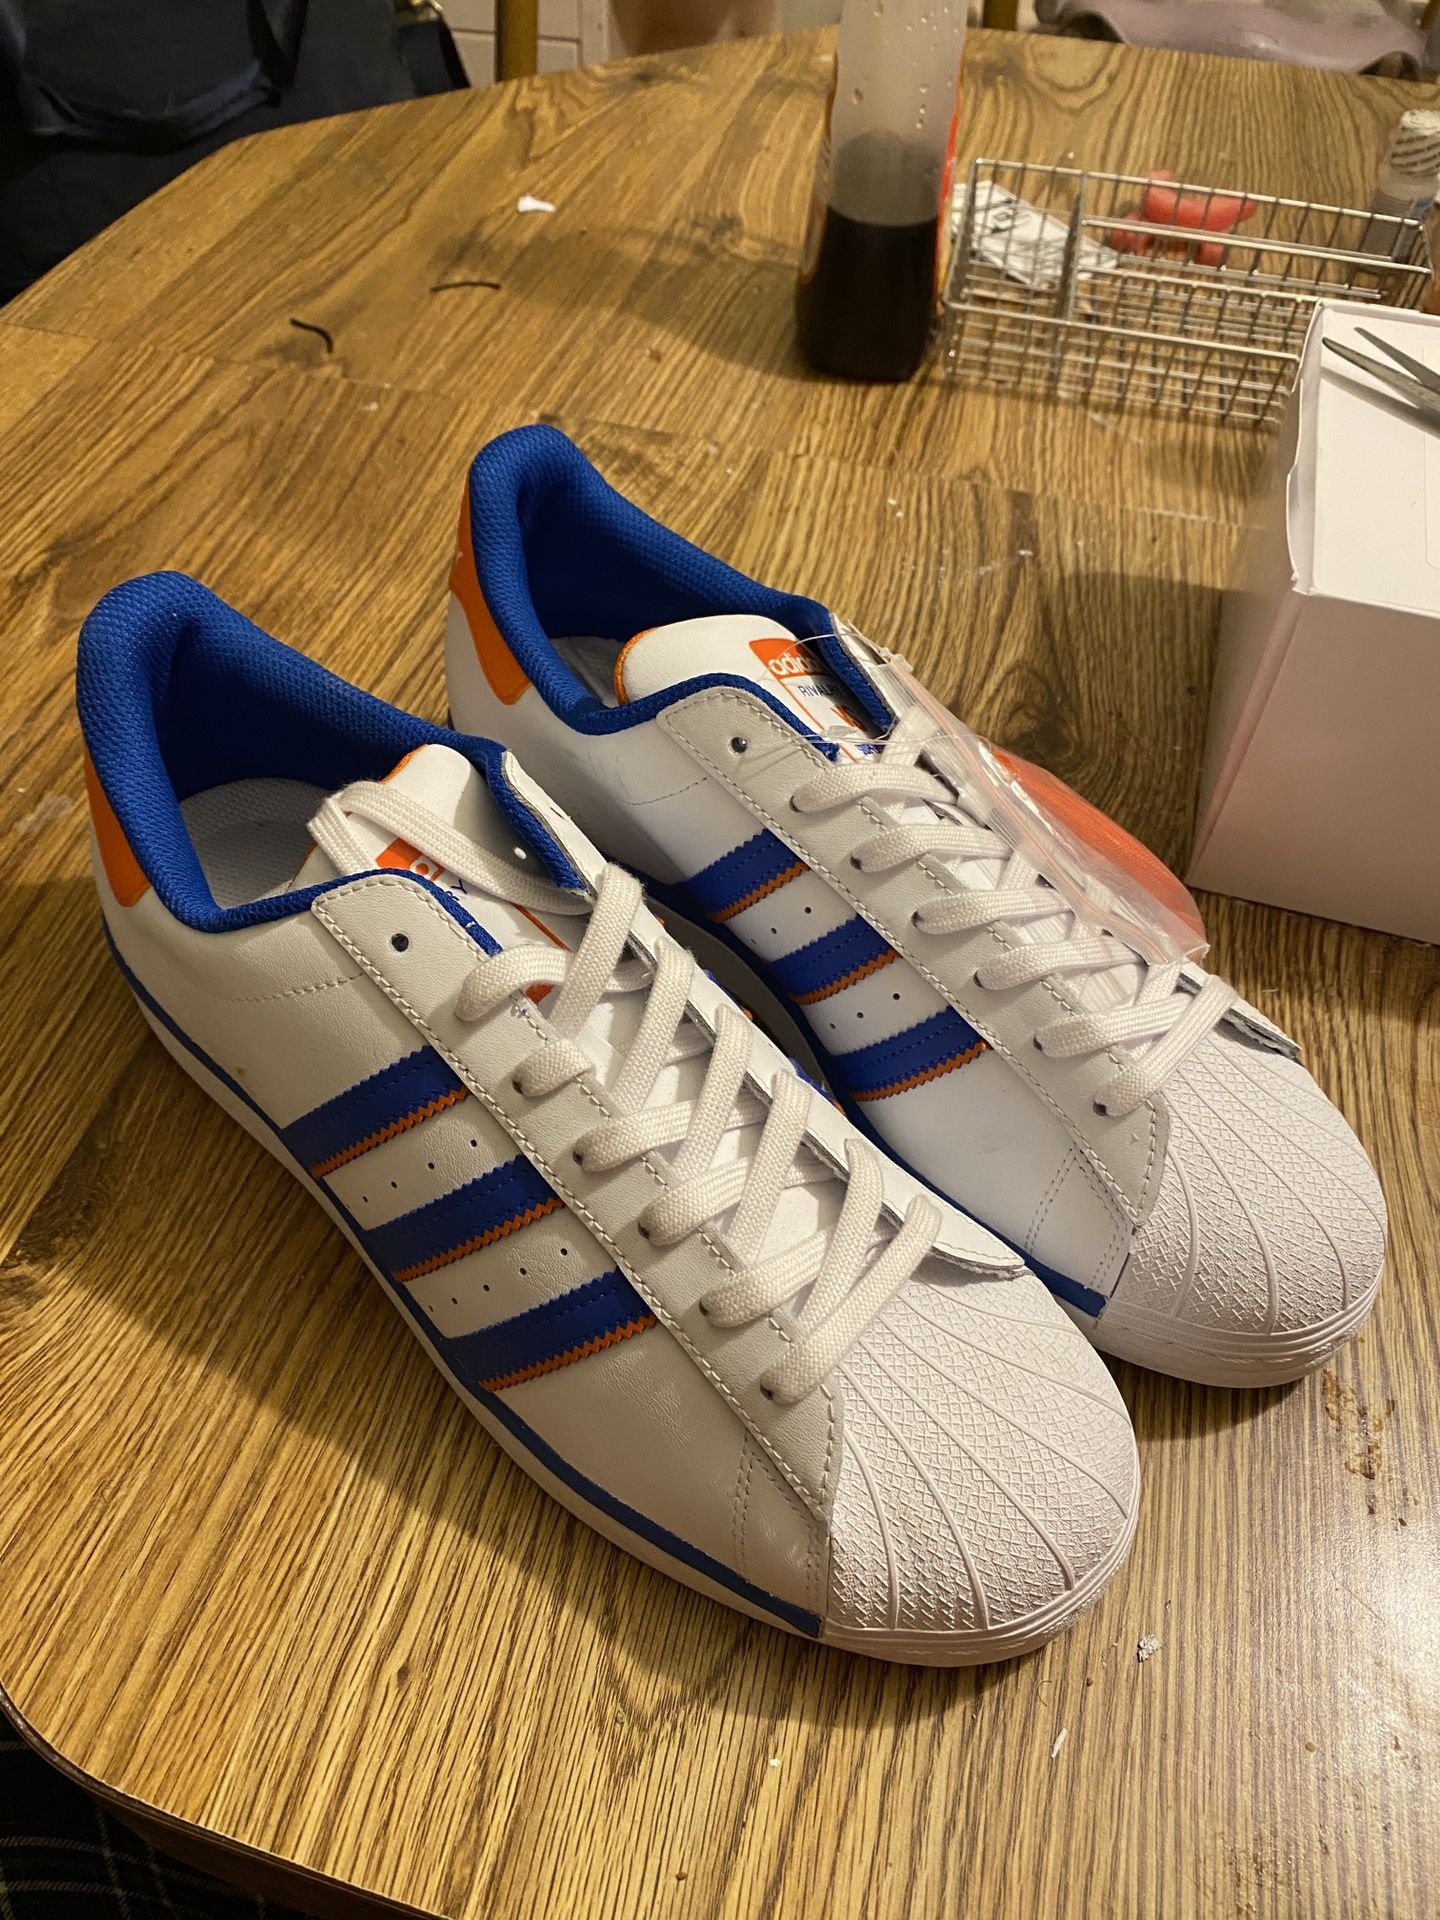 Adidas Superstar with Alternate shoelaces Size 12